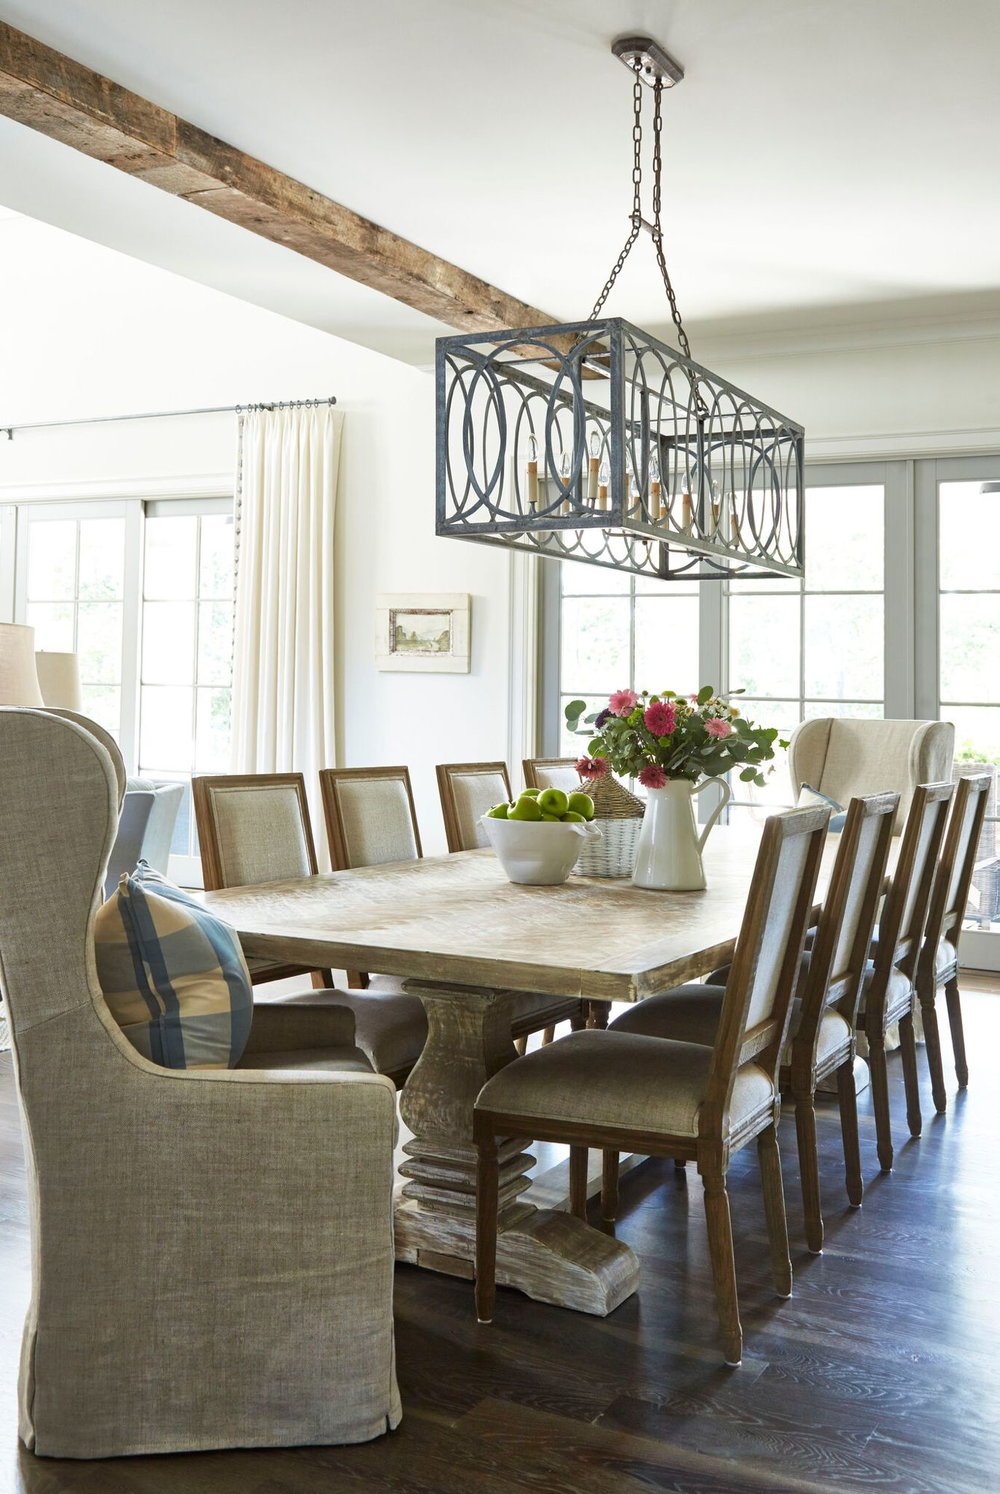 Lisa-Gabrielson-DesignBOCIAN KITCHEN TABLE.jpg